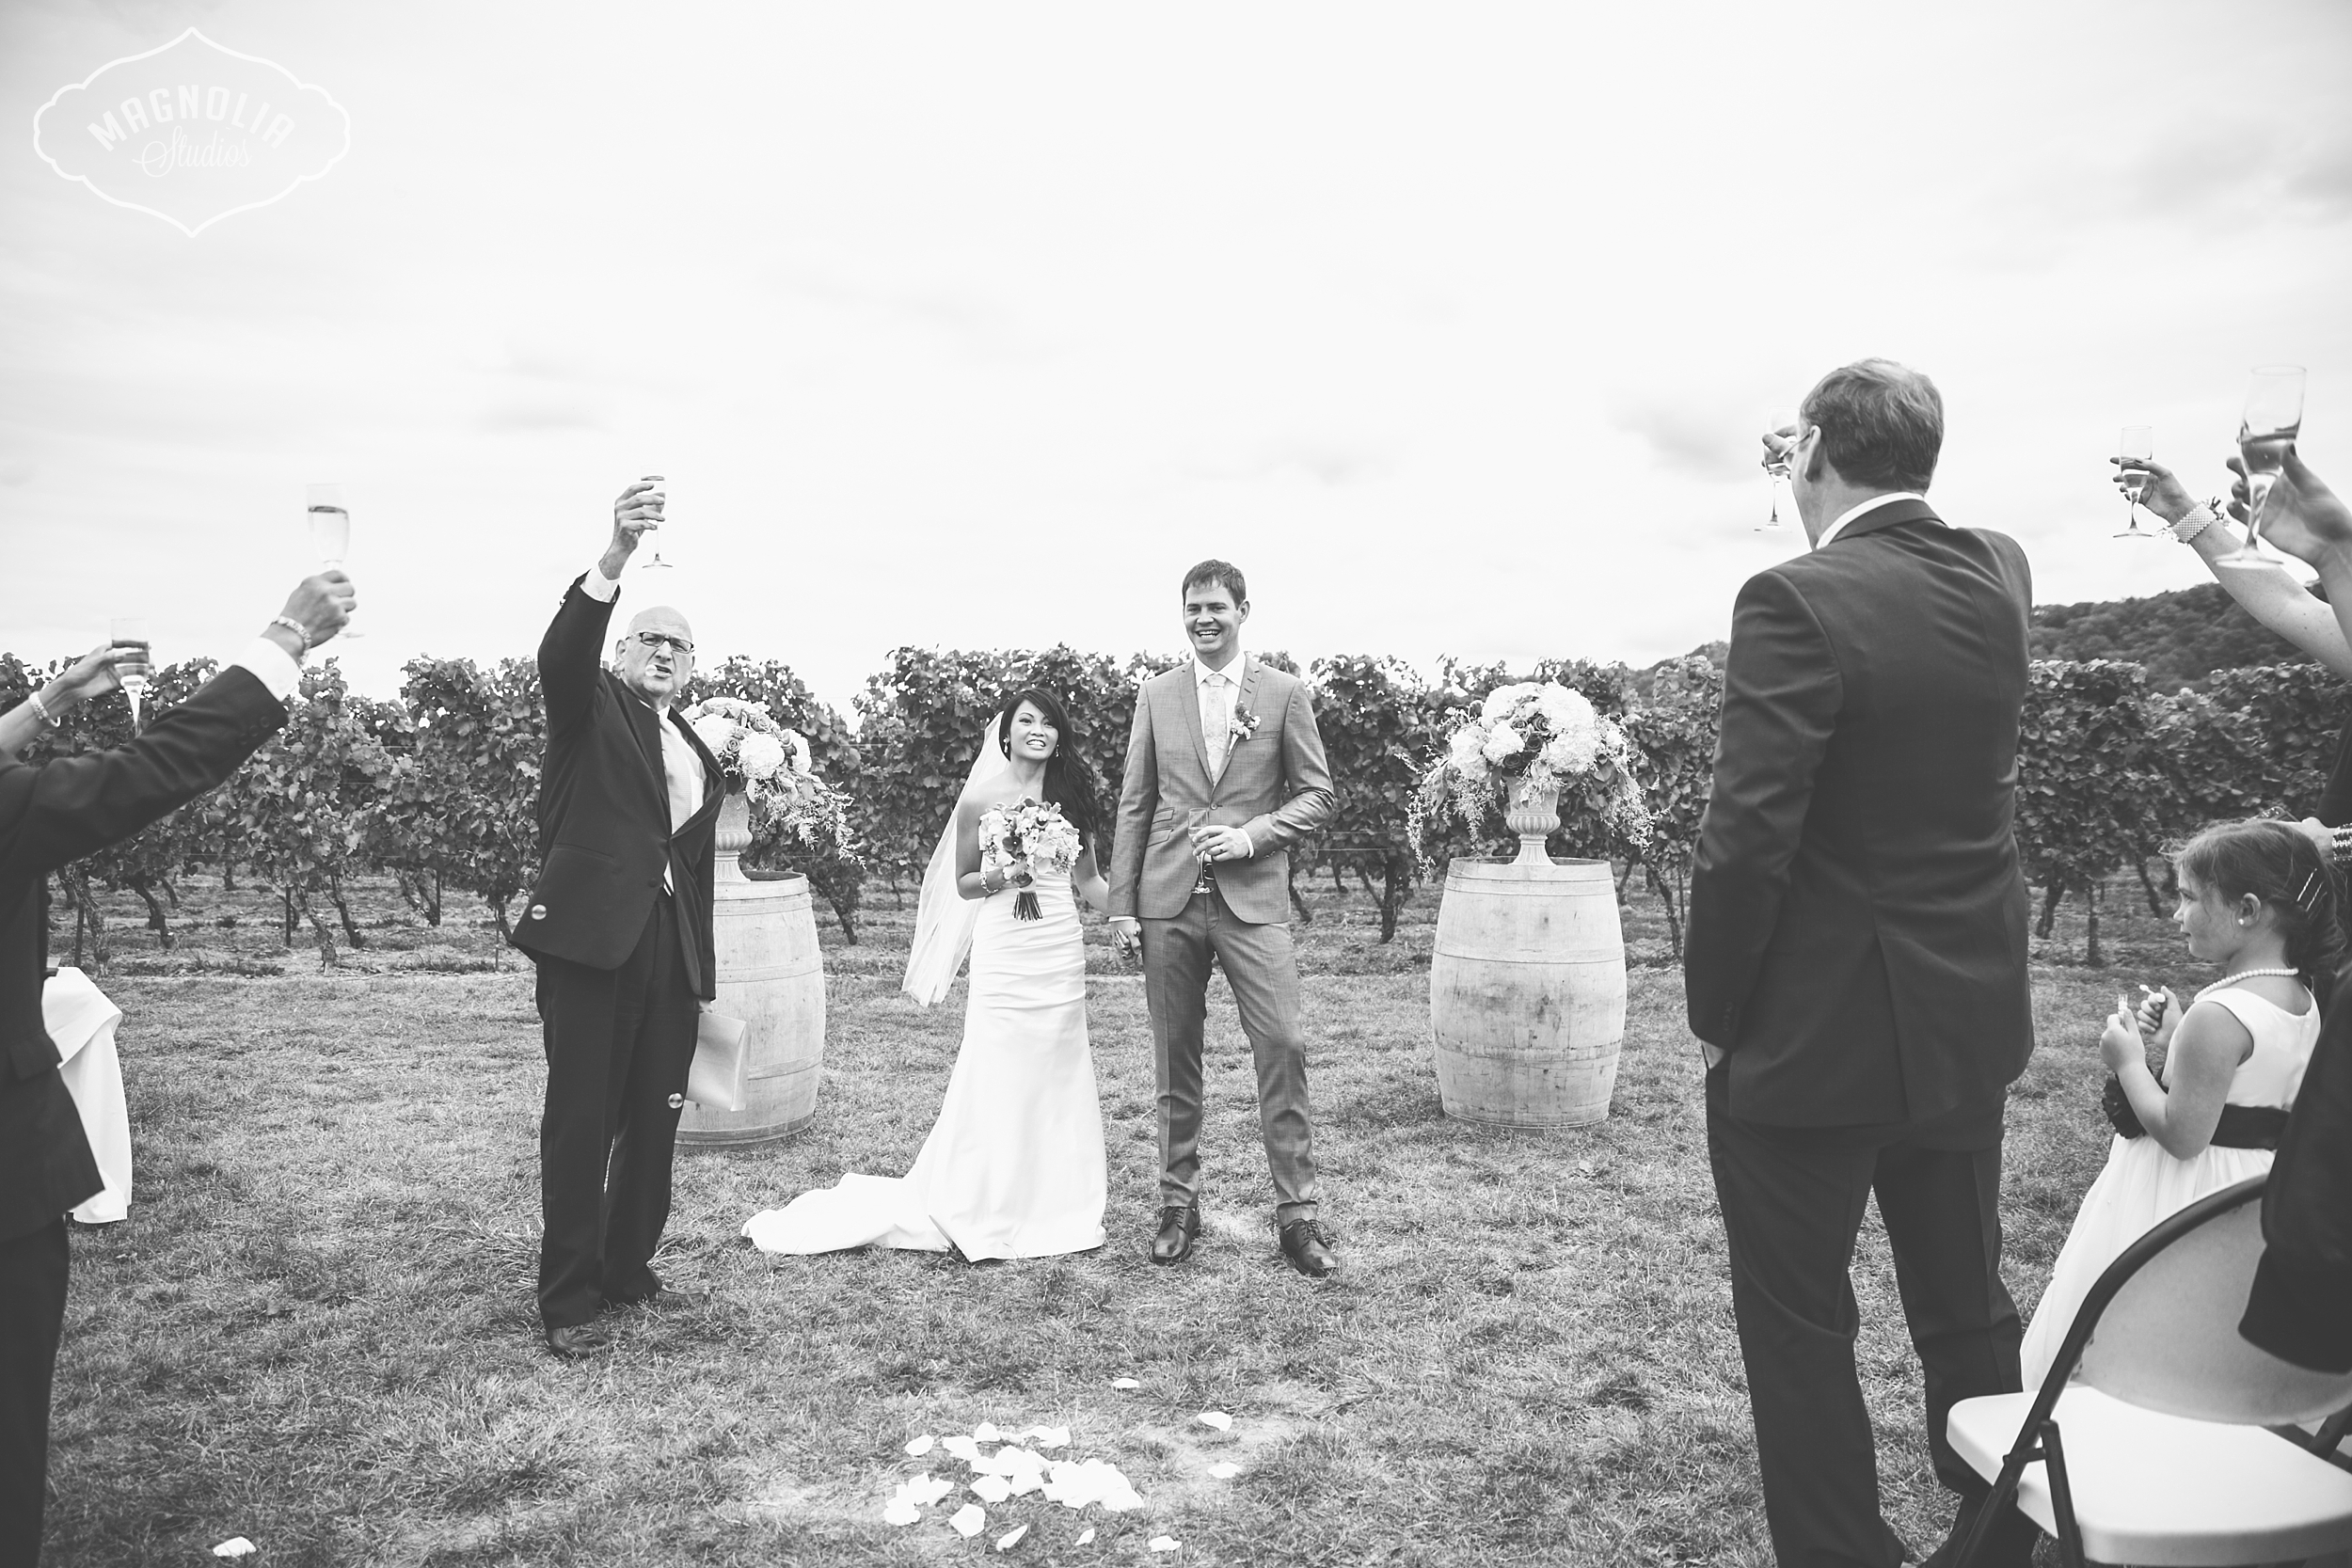 Cavesprings_Winery_Wedding_NOTL-0033